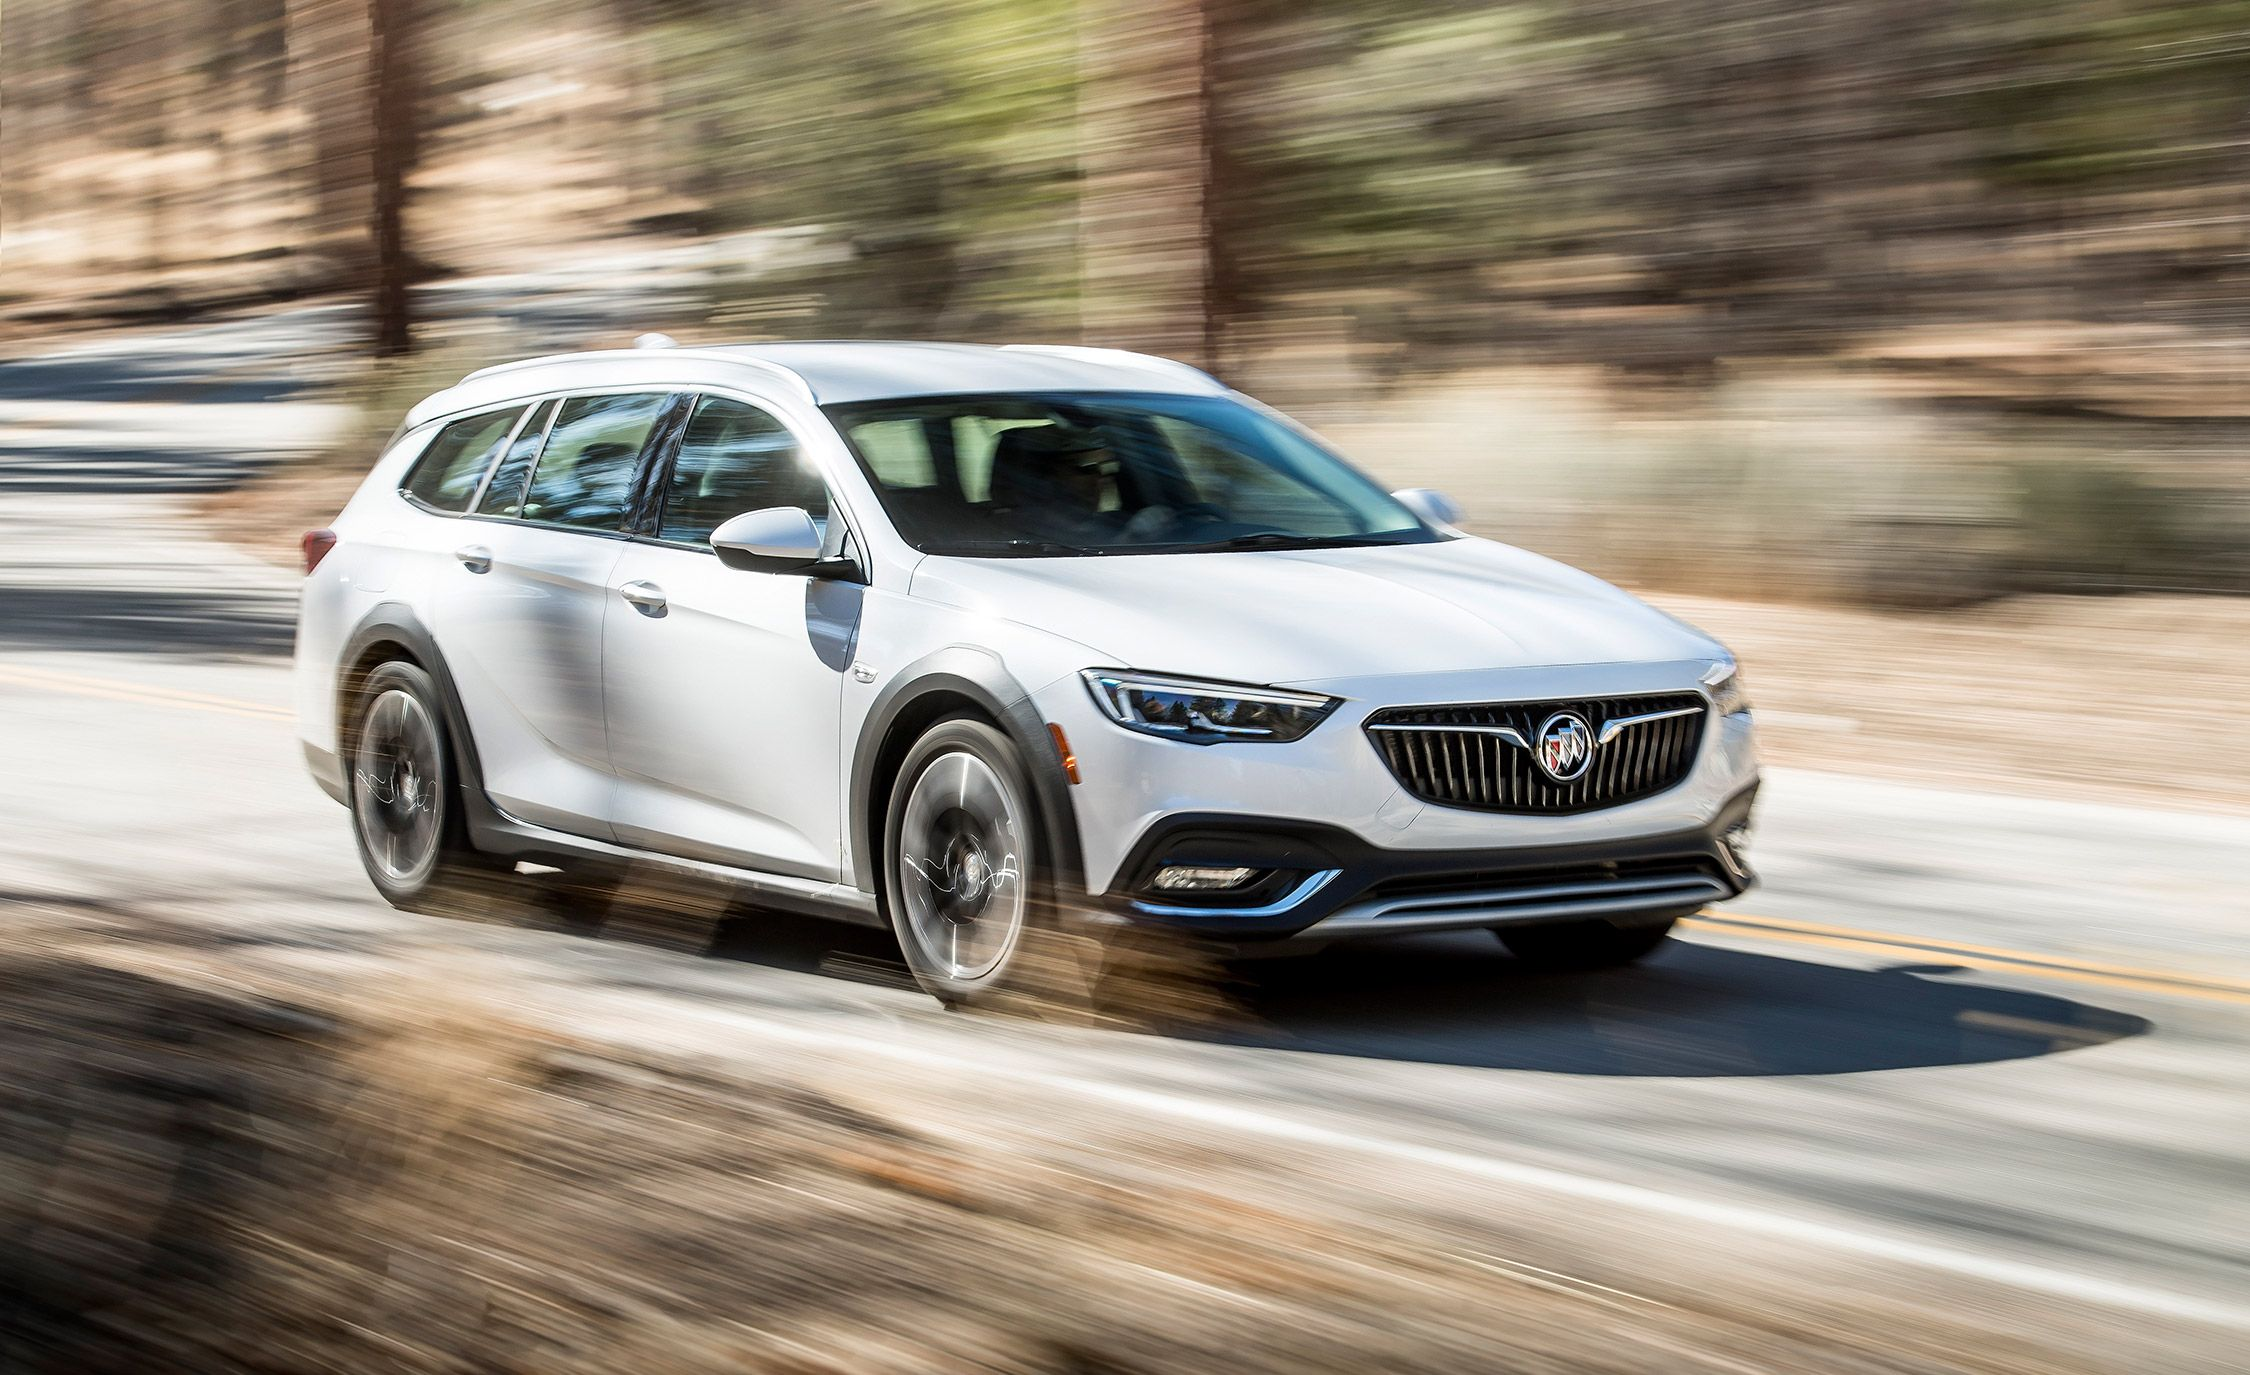 2019 Buick Regal Tourx Reviews Buick Regal Tourx Price Photos